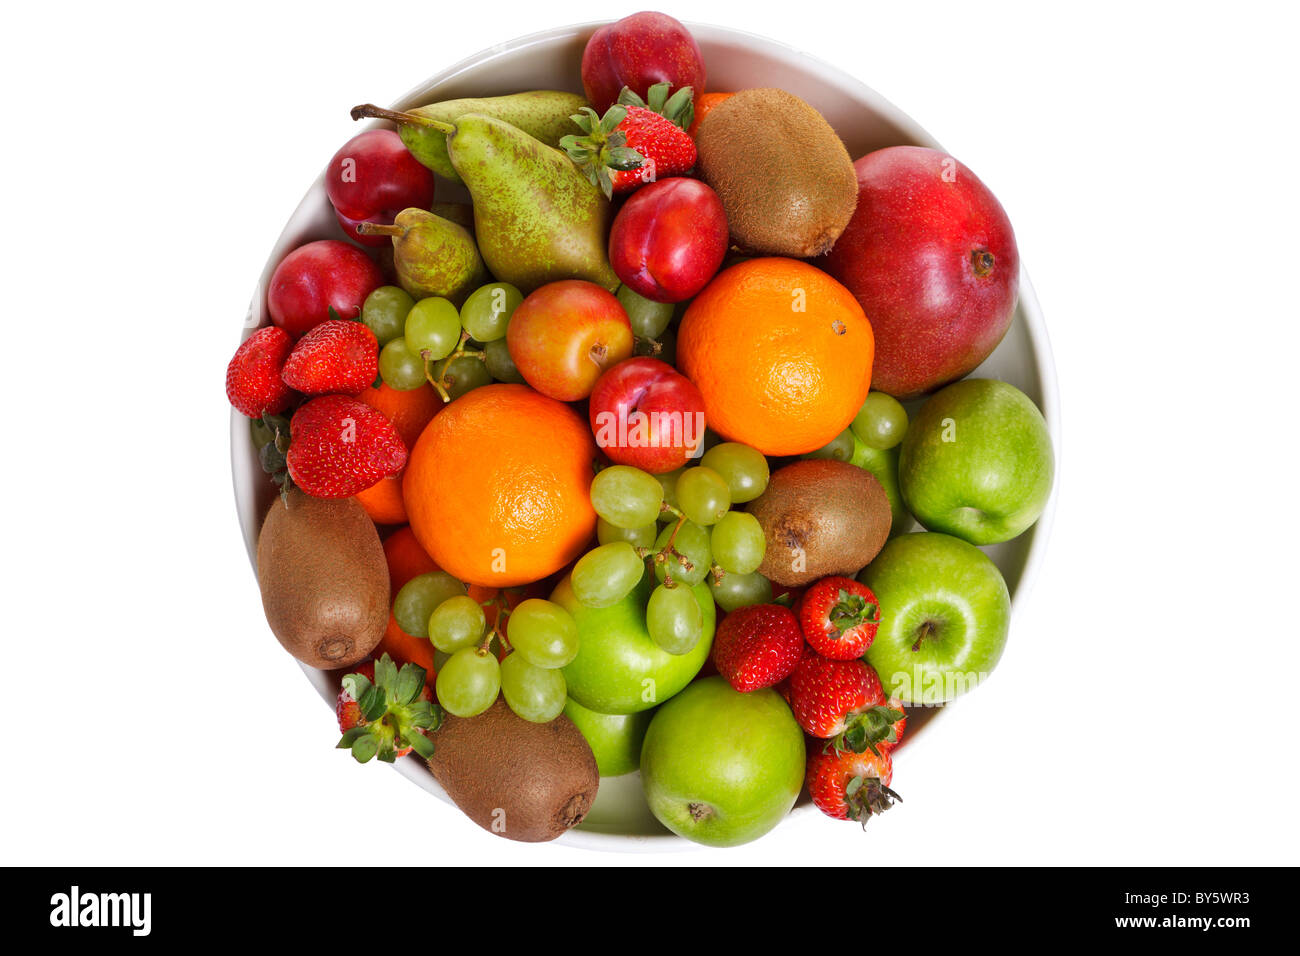 Photo of a bowl of fresh fruit isolated on a white background, shot from above. - Stock Image